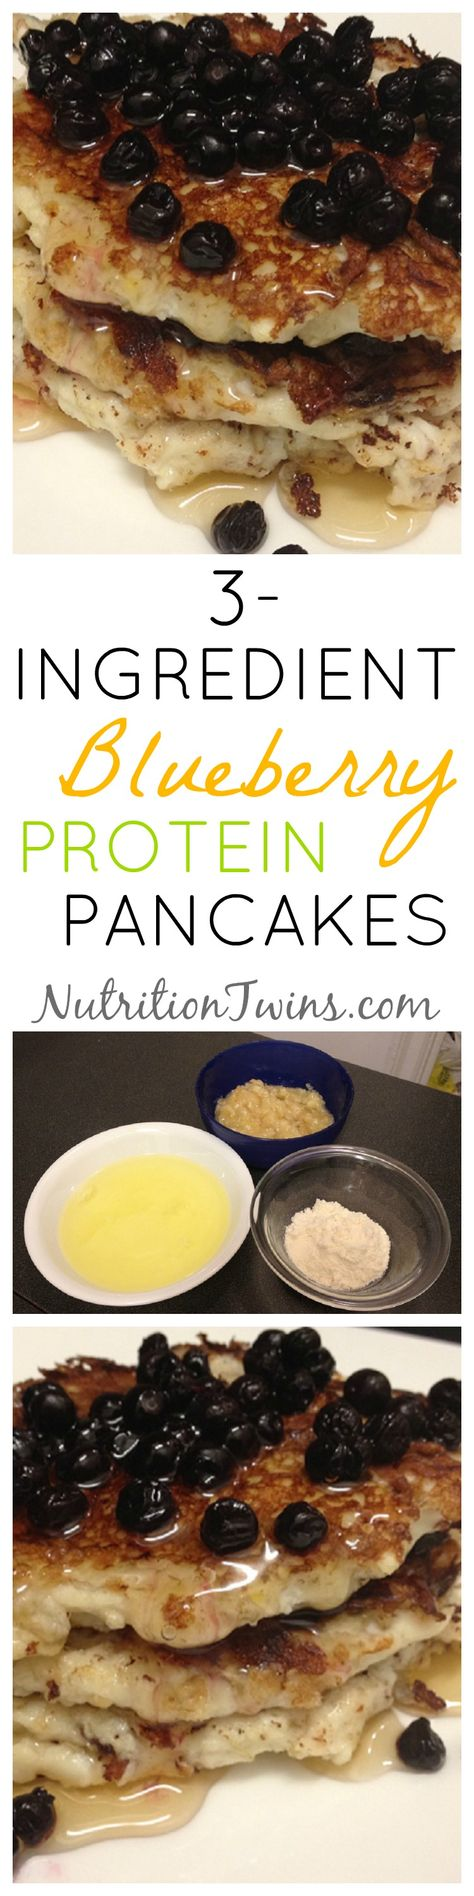 3 Ingredient Blueberry Protein Pancakes. These healthy pancakes are an easy breakfast and make the perfect healthy breakfast for a weight loss diet plan or a flat belly diet plan. #breakfast #recipes #pancakes #healthy For MORE RECIPES, fitness  nutrition tips please SIGN UP for our FREE NEWSLETTER www.NutritionTwins.com